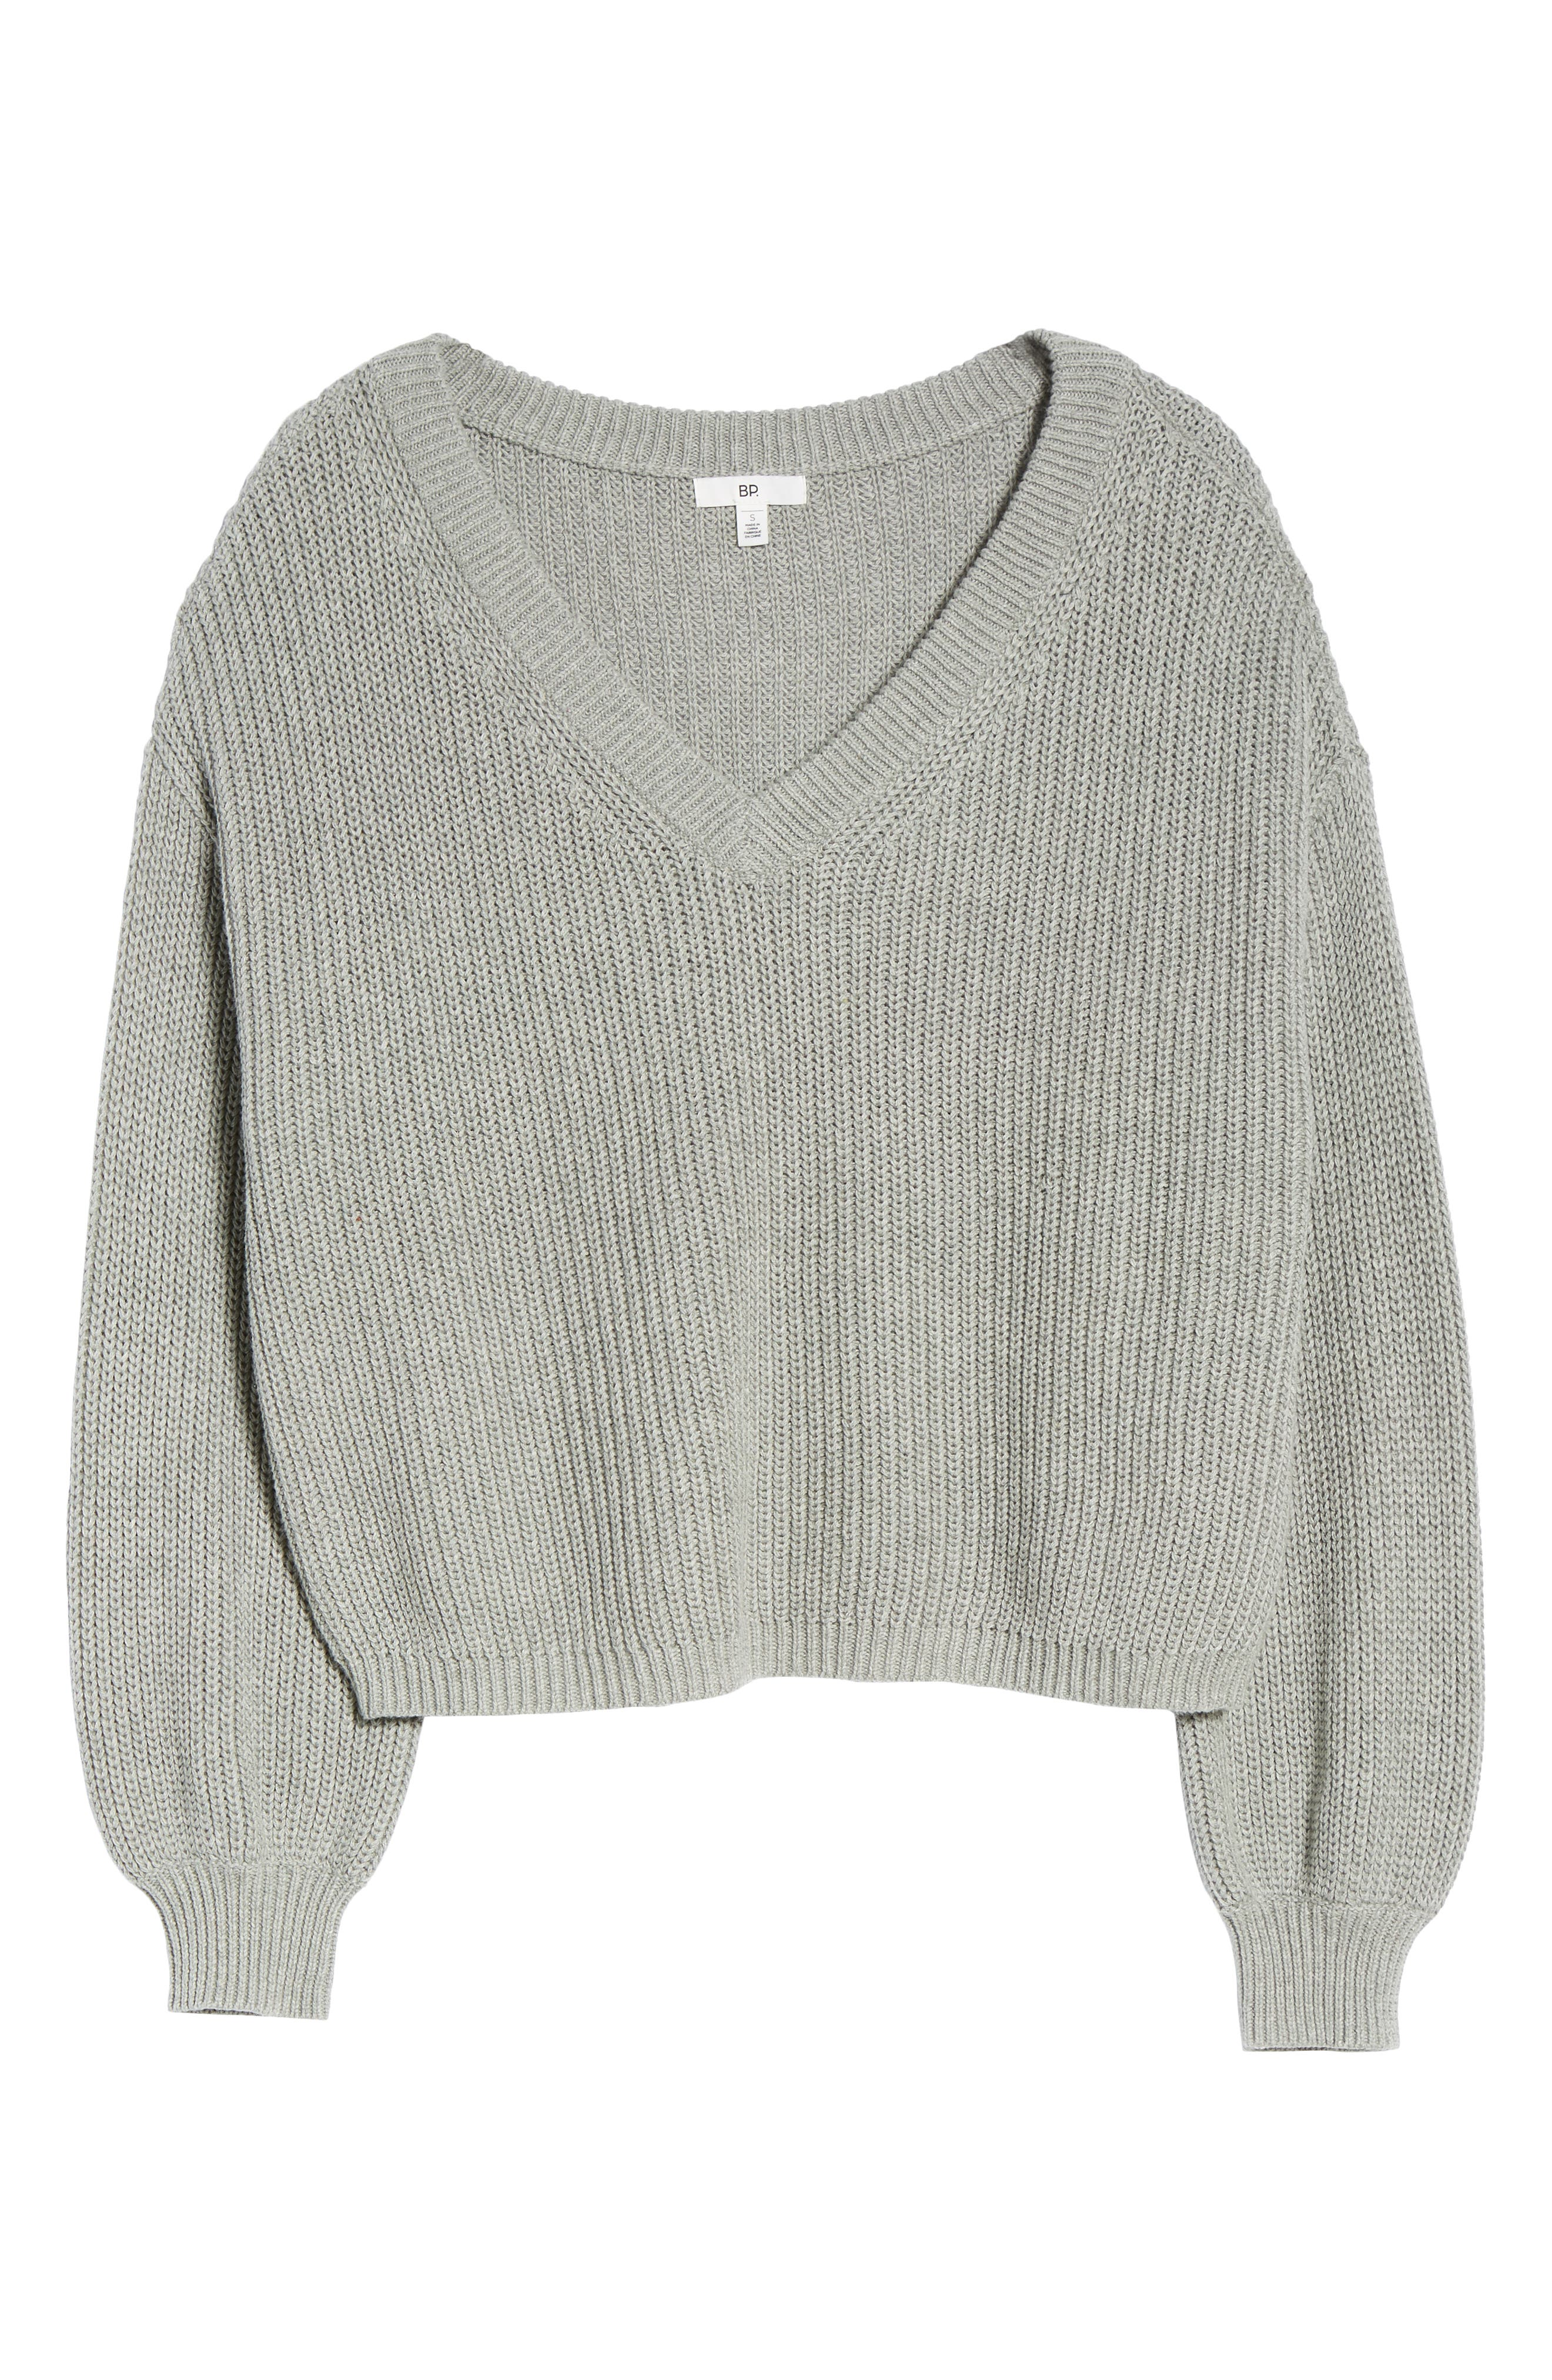 V Neck Cotton Sweater,                             Alternate thumbnail 6, color,                             030